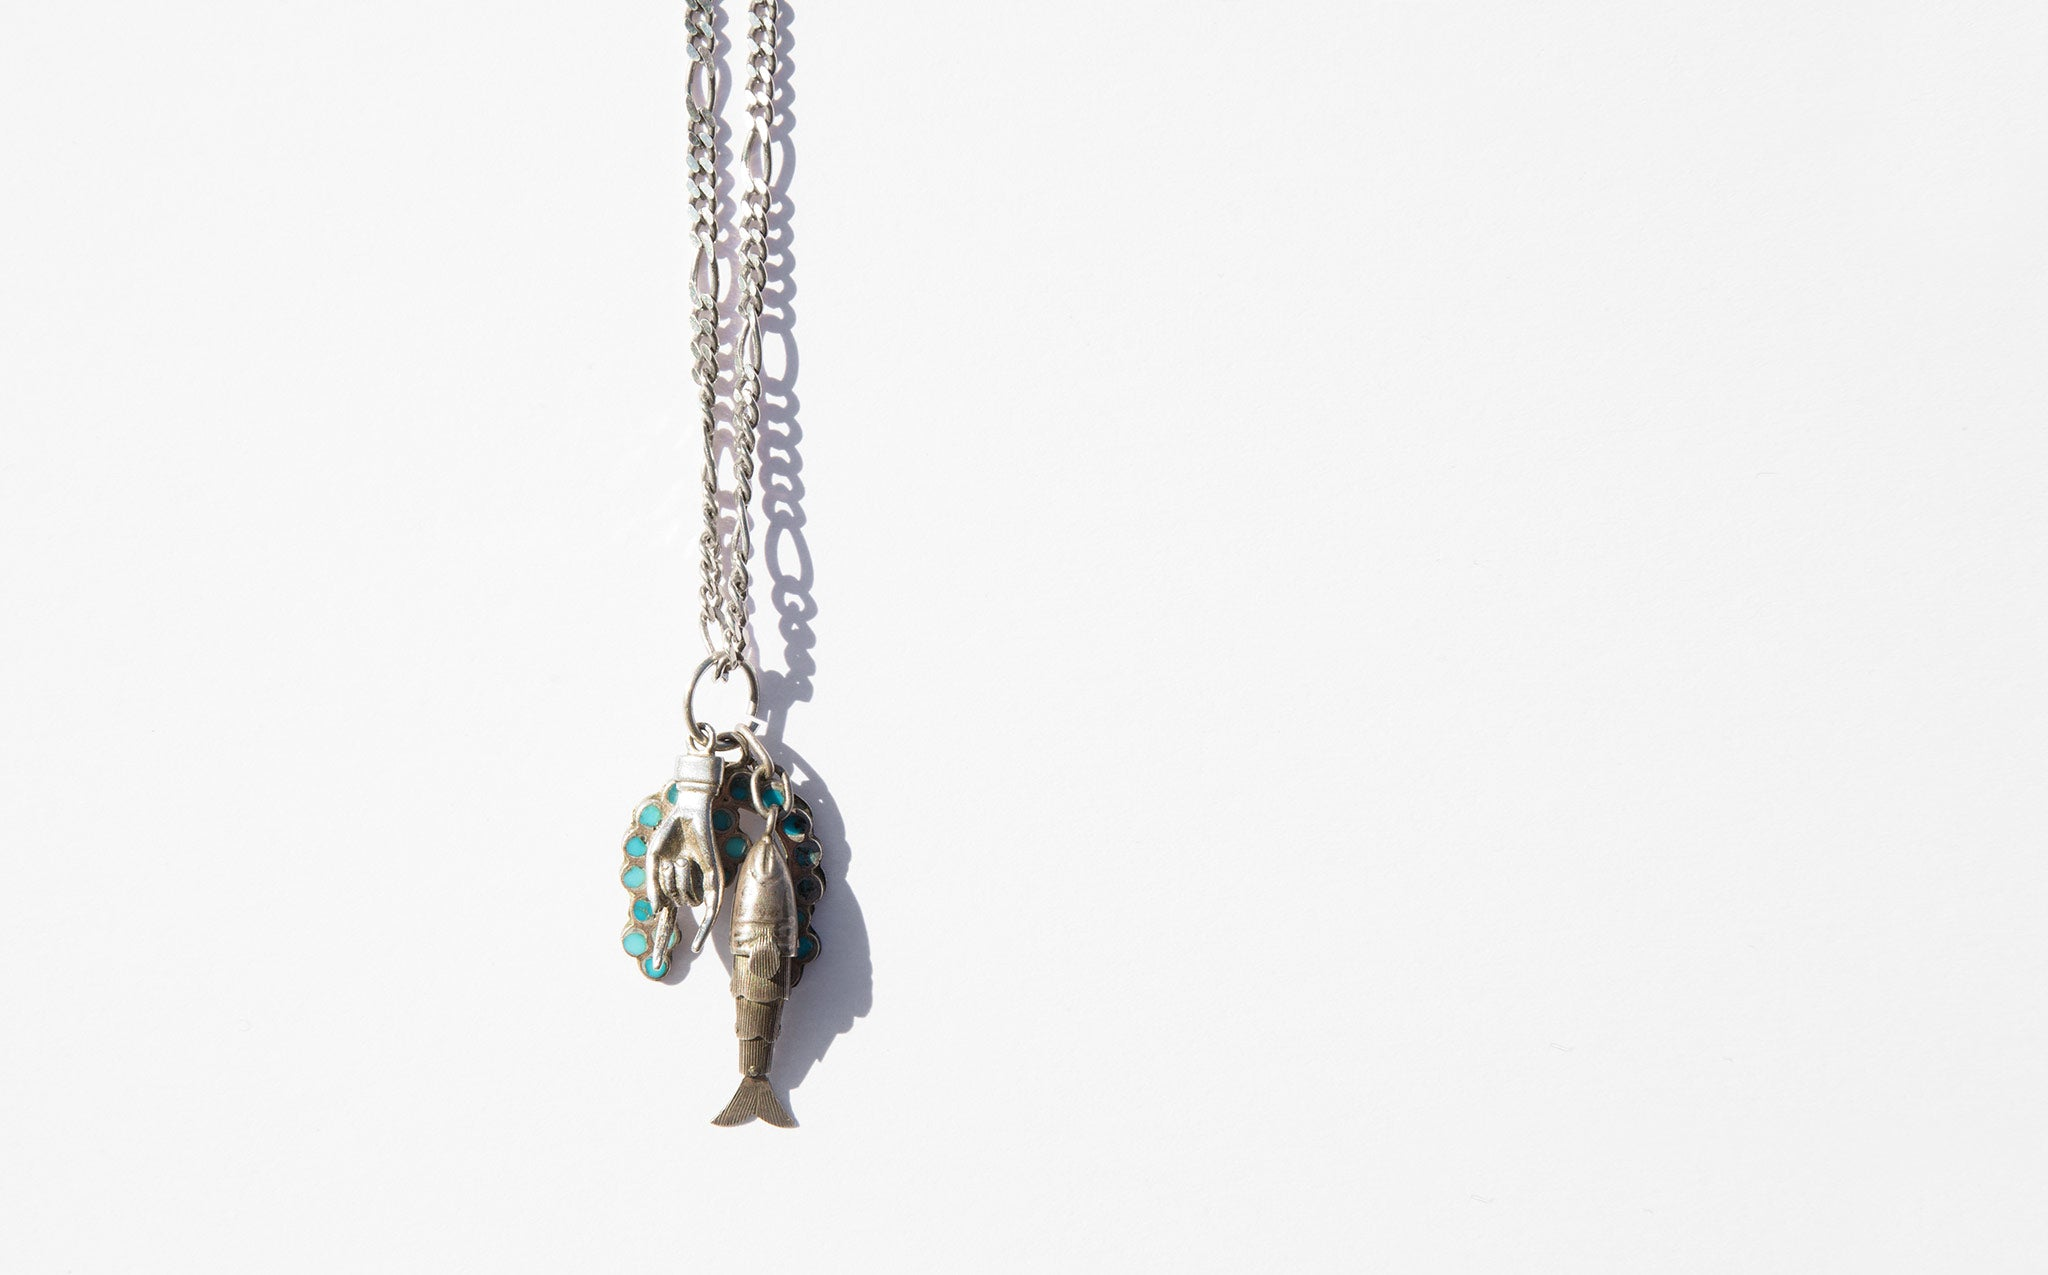 Luck and Protection Necklace